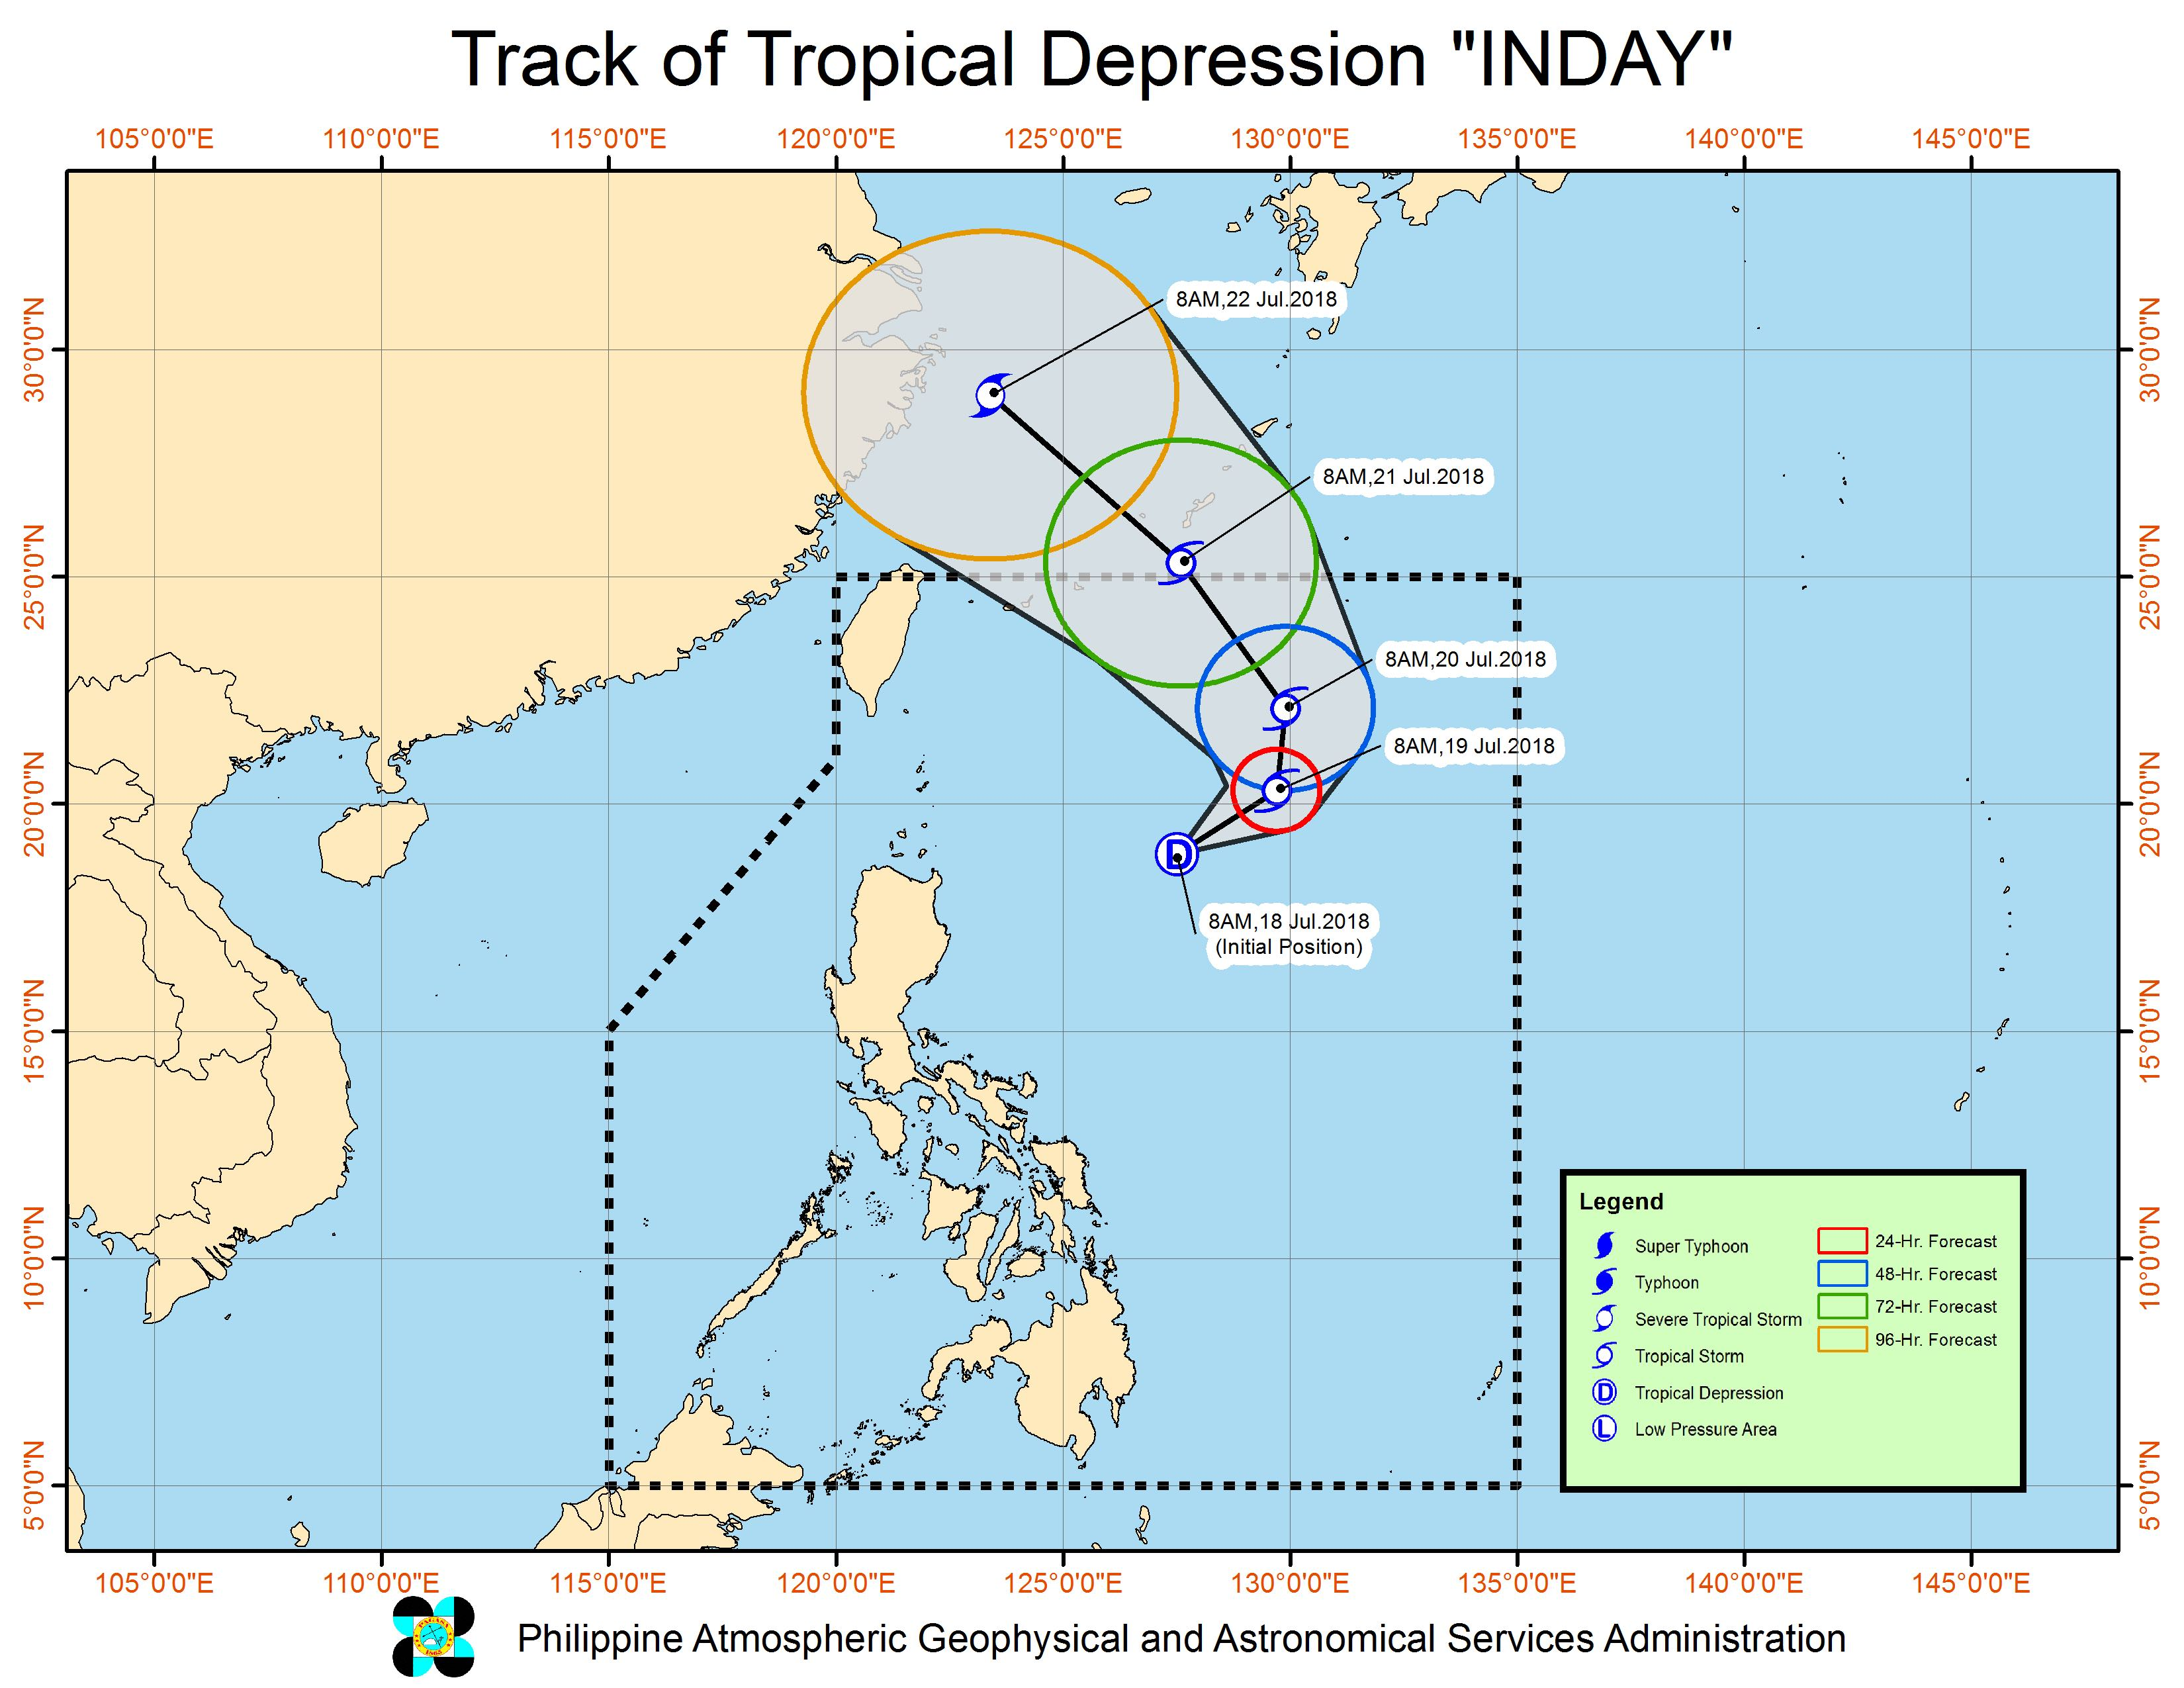 Forecast track of Tropical Depression Inday as of July 18, 2018, 11 am. Image courtesy of PAGASA